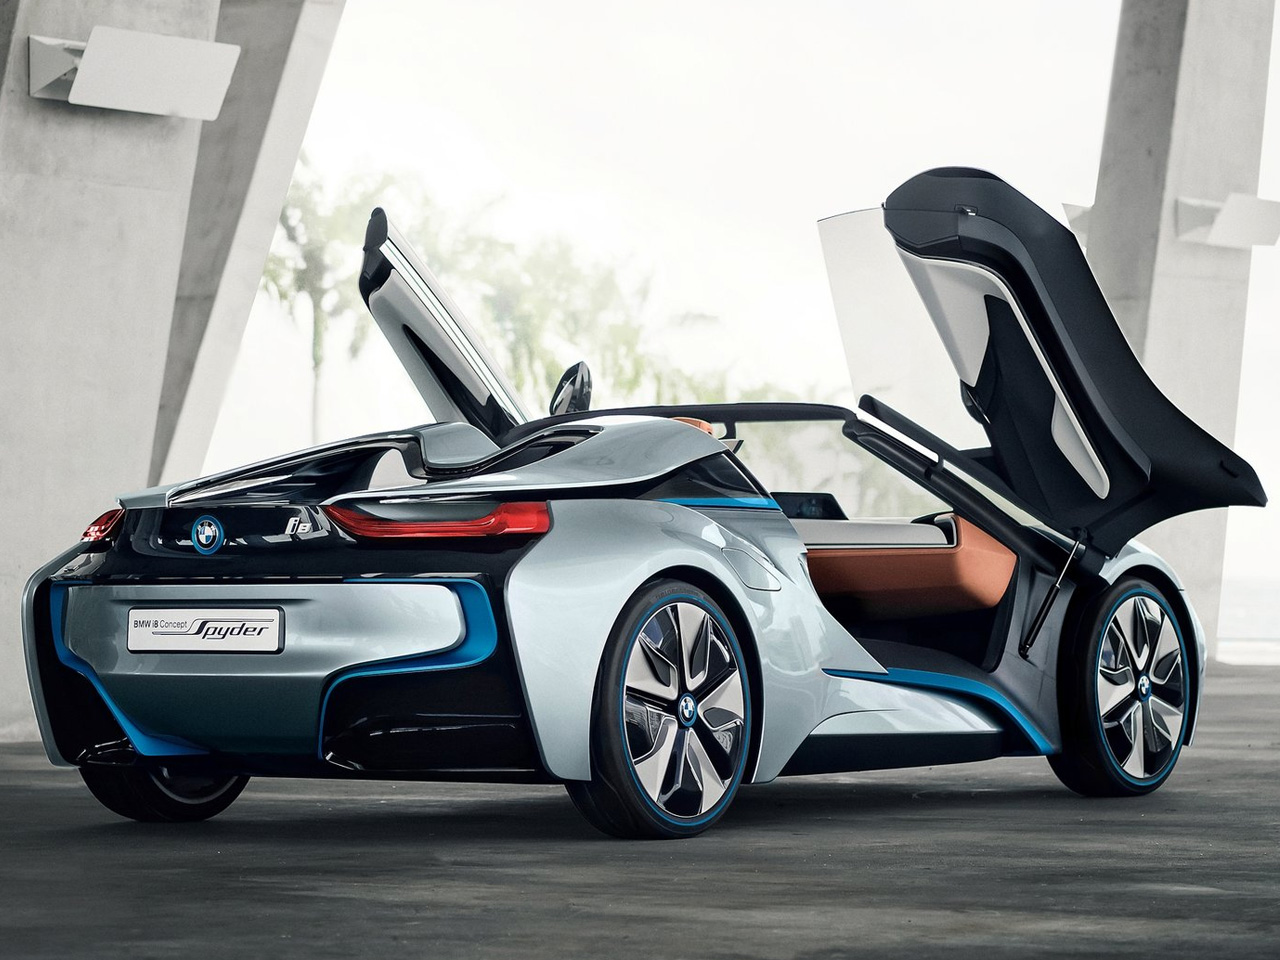 Bmw i8 spyder will soon come to life